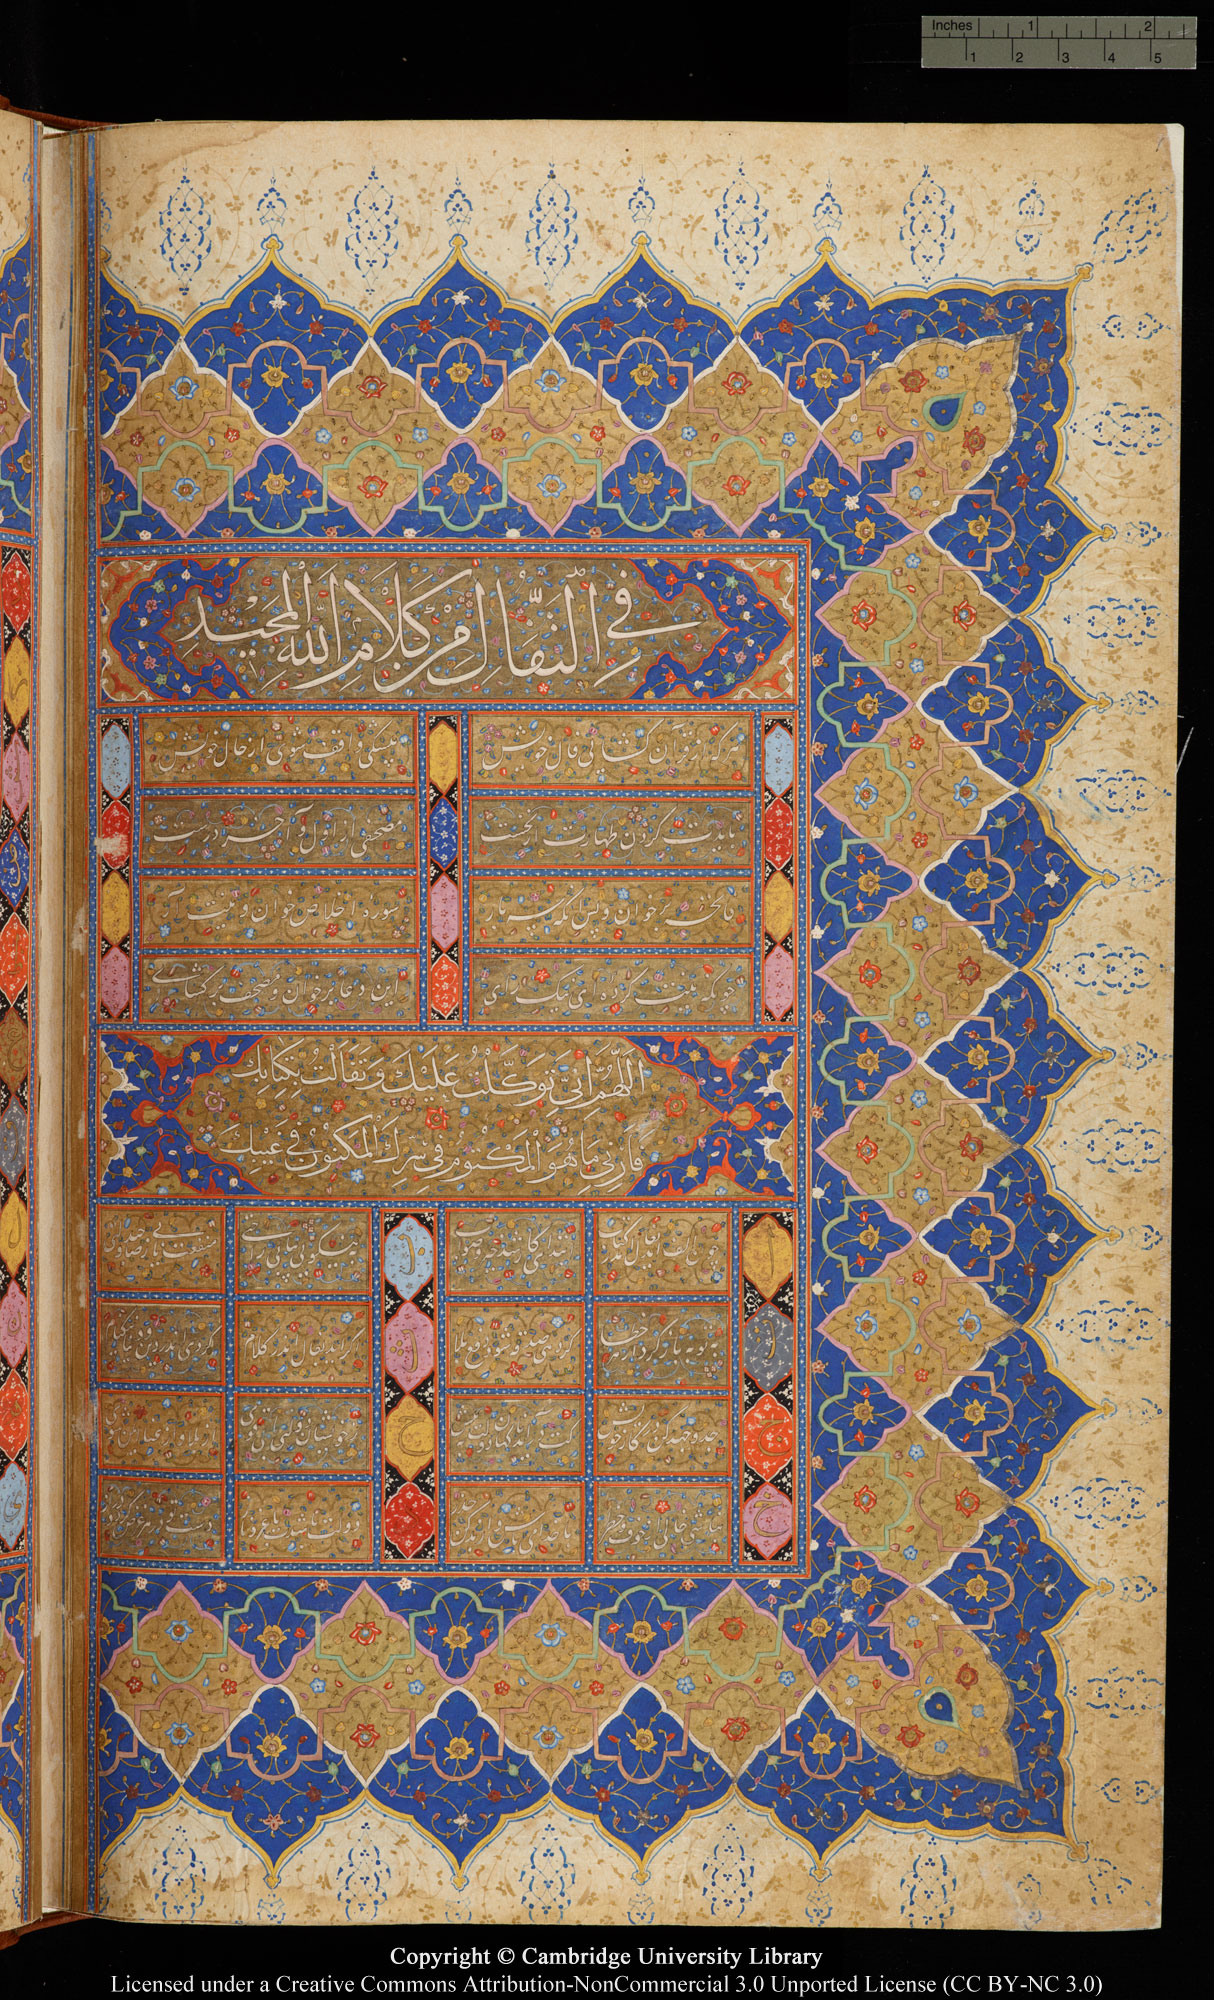 Page of the book of Omens from al-Qur'ān (Nn.3.75), Illuminated Qurʾān from the library of Tipu Sultan, presented to the University of Cambridge by the Court of Directors of the East India Company in 1806. Accessible in the Cambridge digital library: https://cudl.lib.cam.ac.uk/view/MS-NN-00003-00075/1